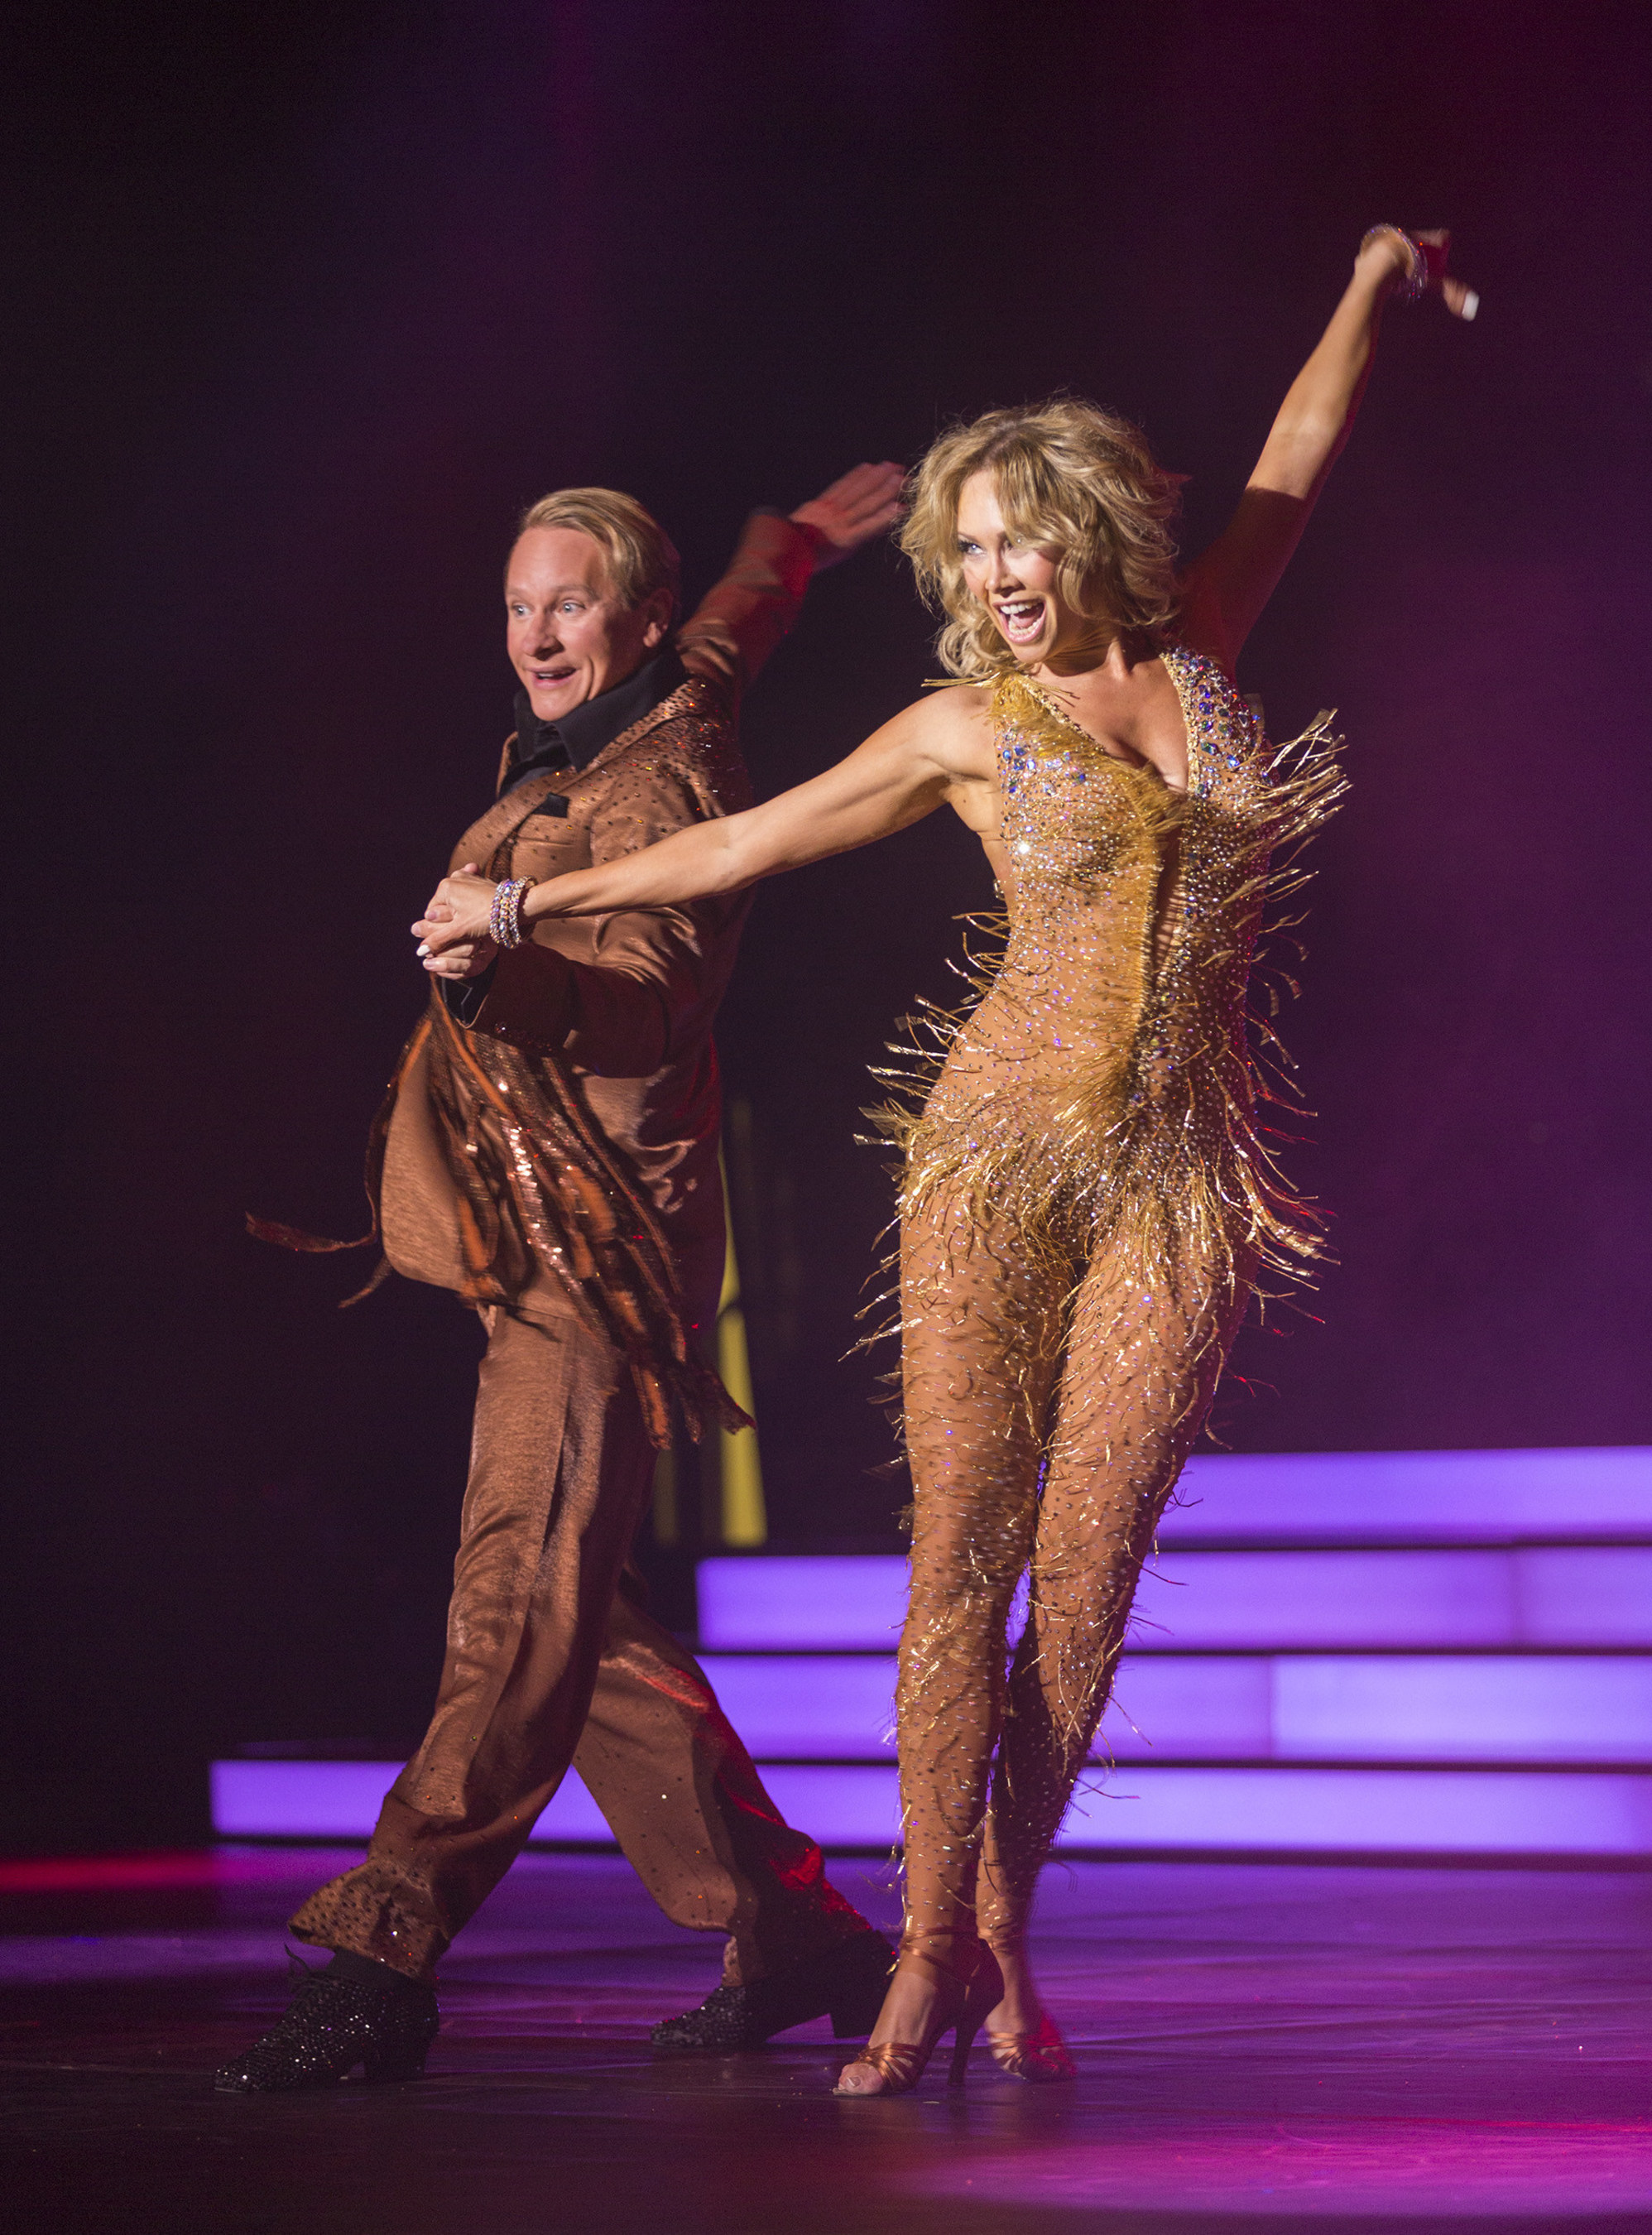 """The special """"Dancing with the Stars: At Sea"""" theme sailings also will feature television personality Carson Kressley and """"Dancing with the Stars"""" professional dancer and two-time Mirrorball Trophy winner Kym Johnson who is hot off the current season of the hit ABC television show."""